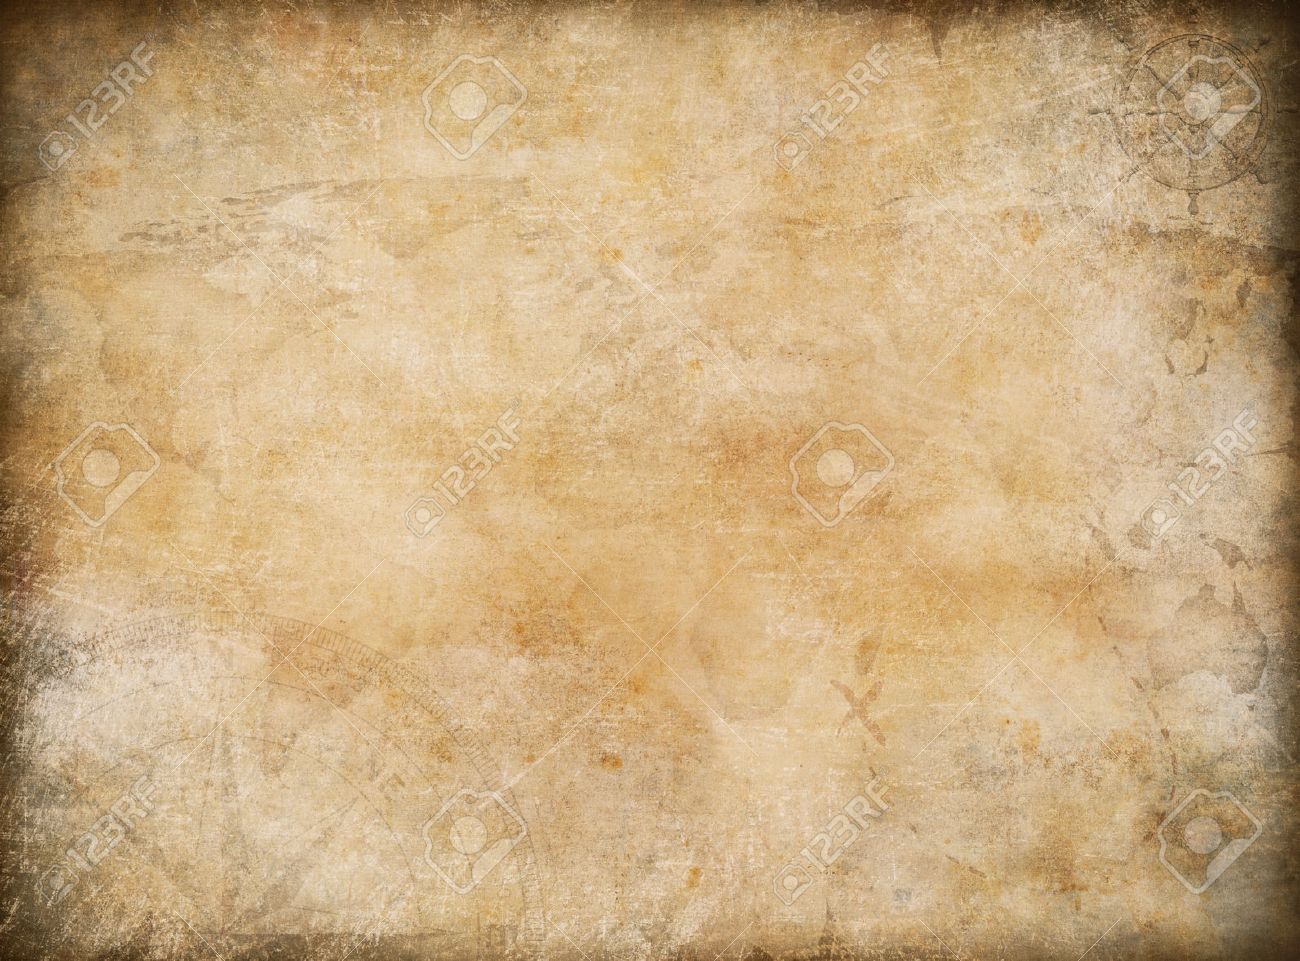 Old Map Exploration And Adventure Background Stock Photo Picture 1300x961